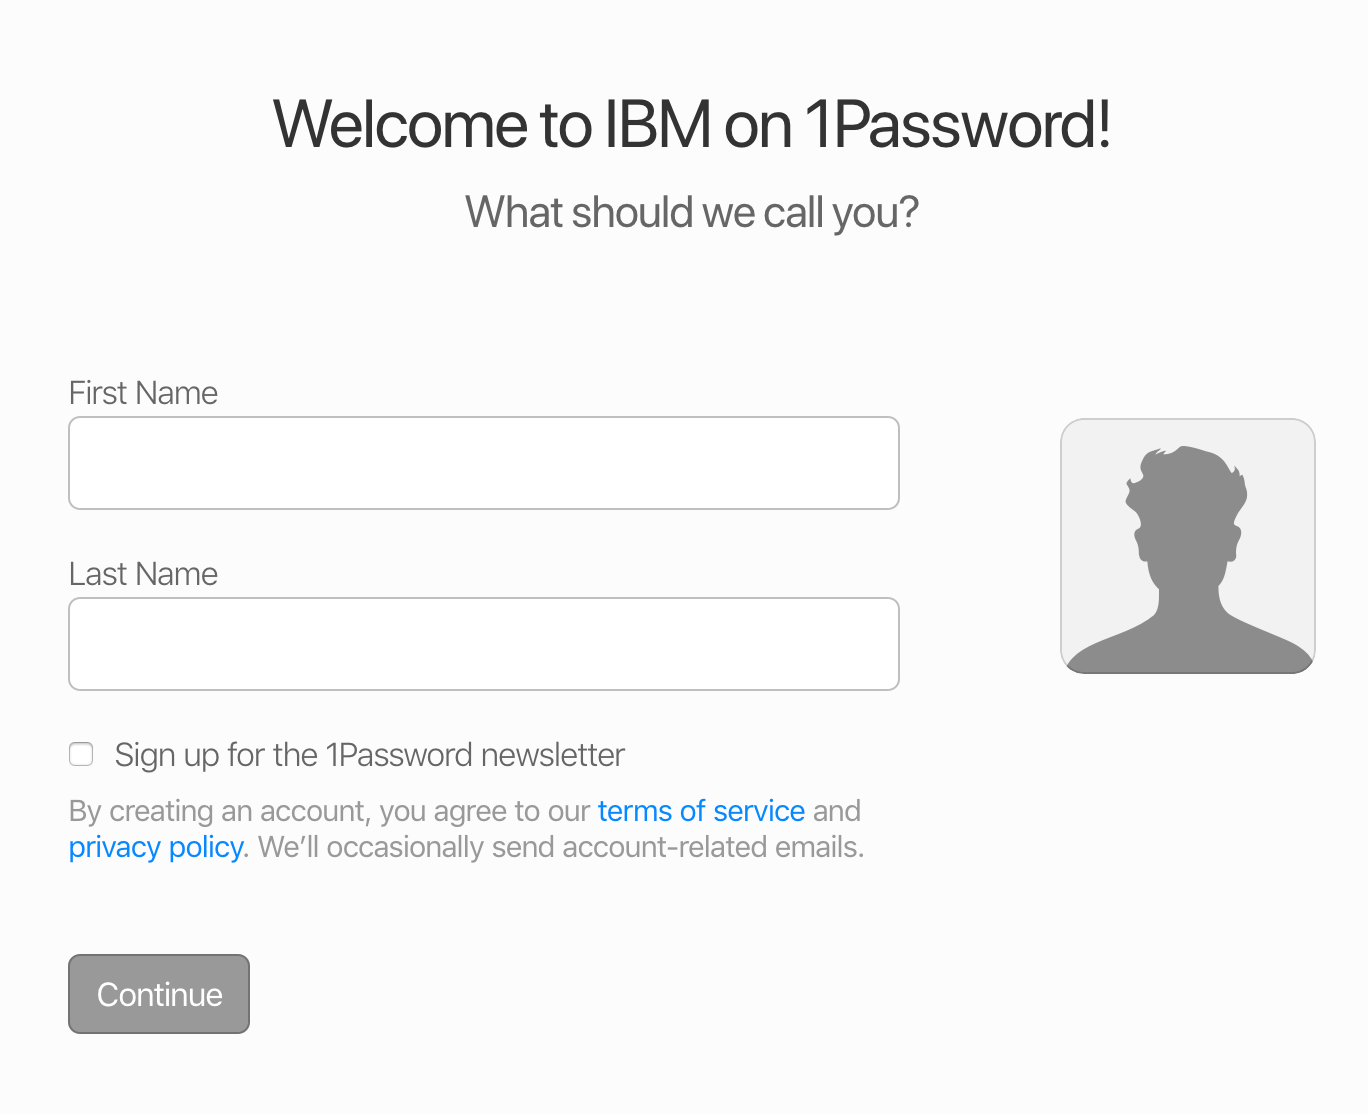 Add your first and last name for your 1Password account